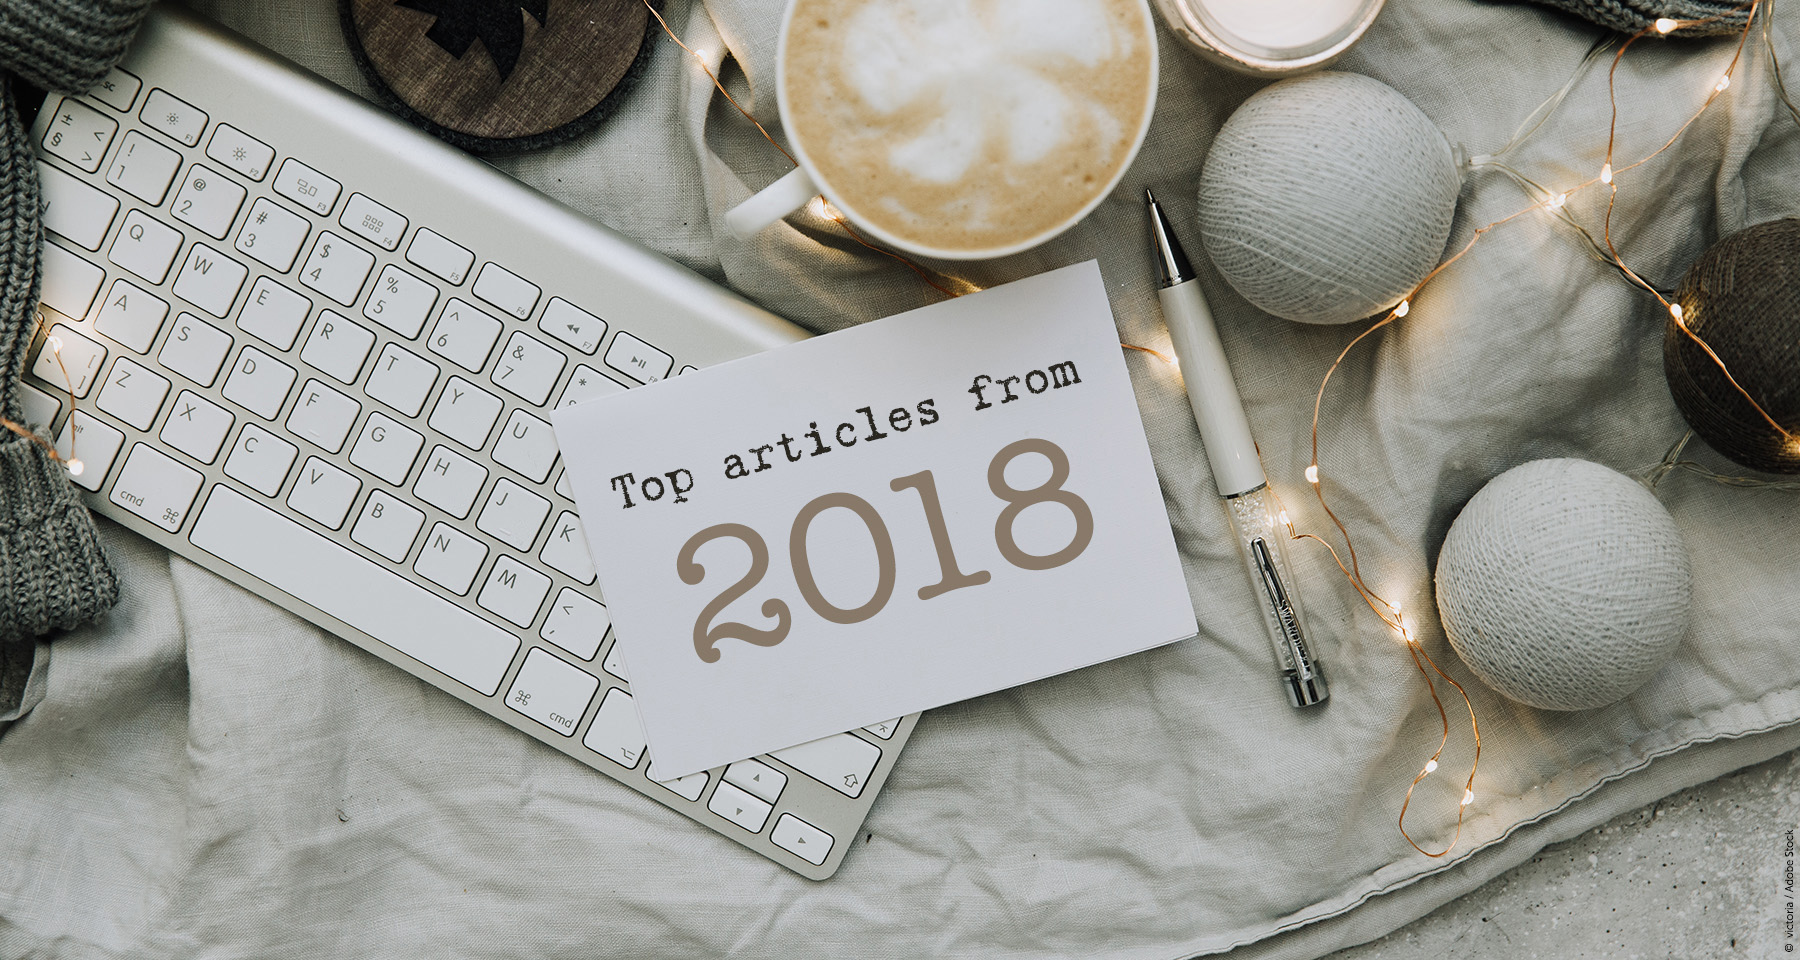 Top INMA articles from 2018 highlight focus on digital subscriptions